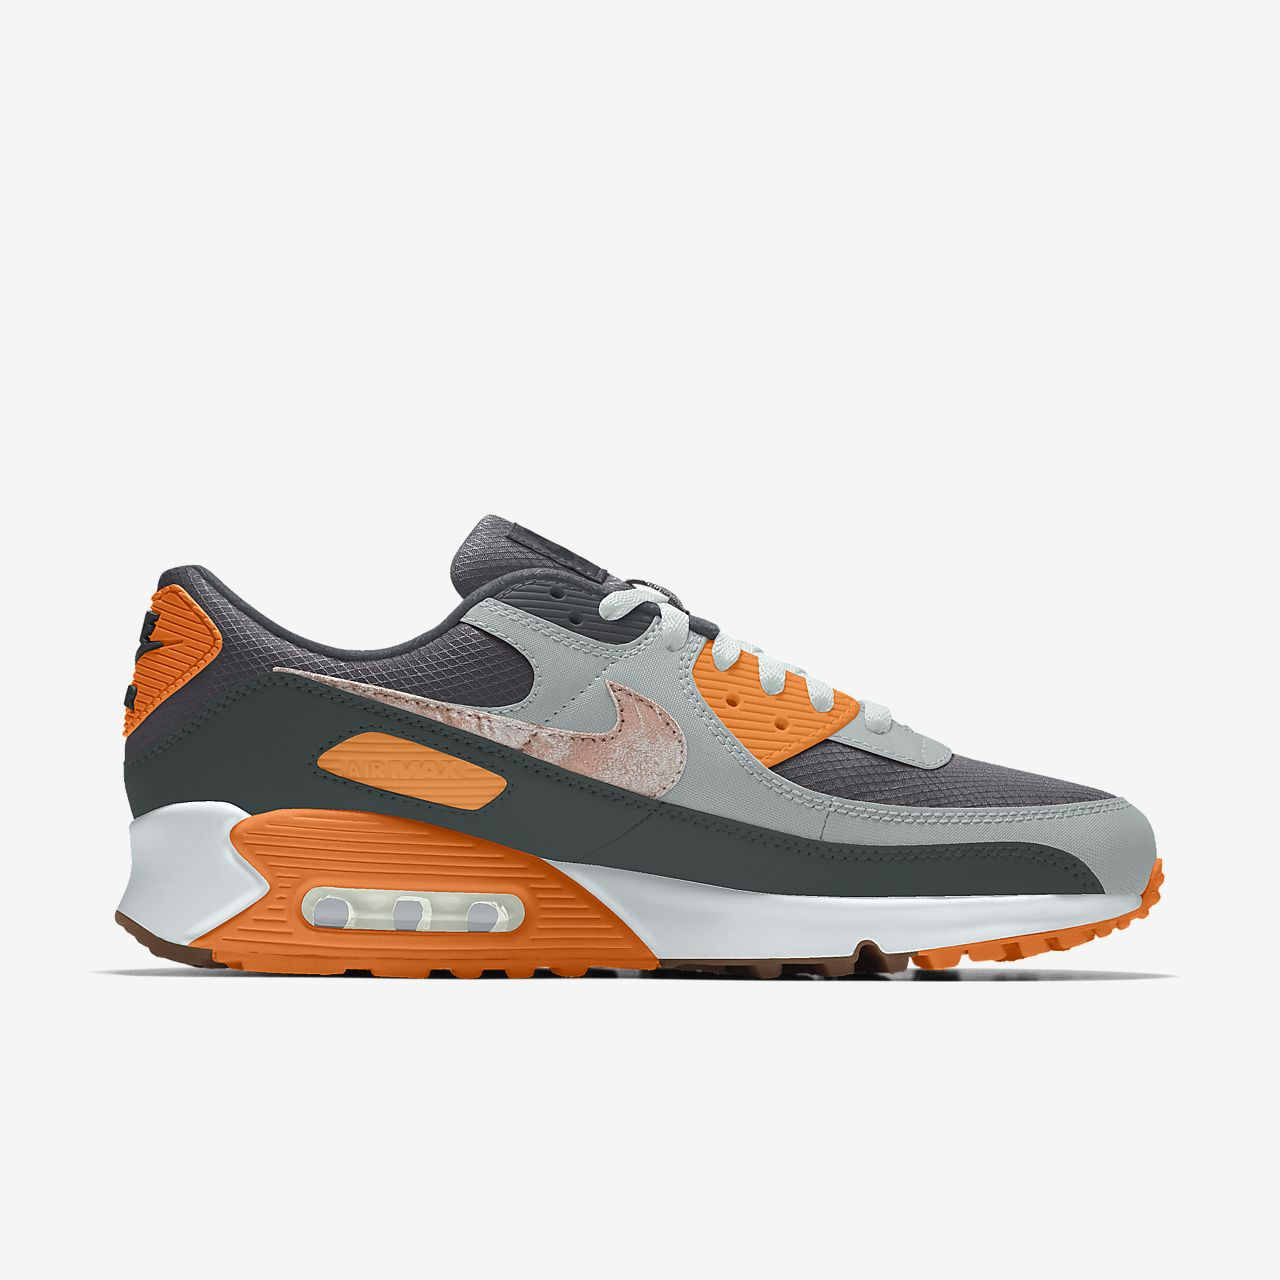 Nike Air Max 90 Unlocked By You Custom lifestyleschoen voor heren